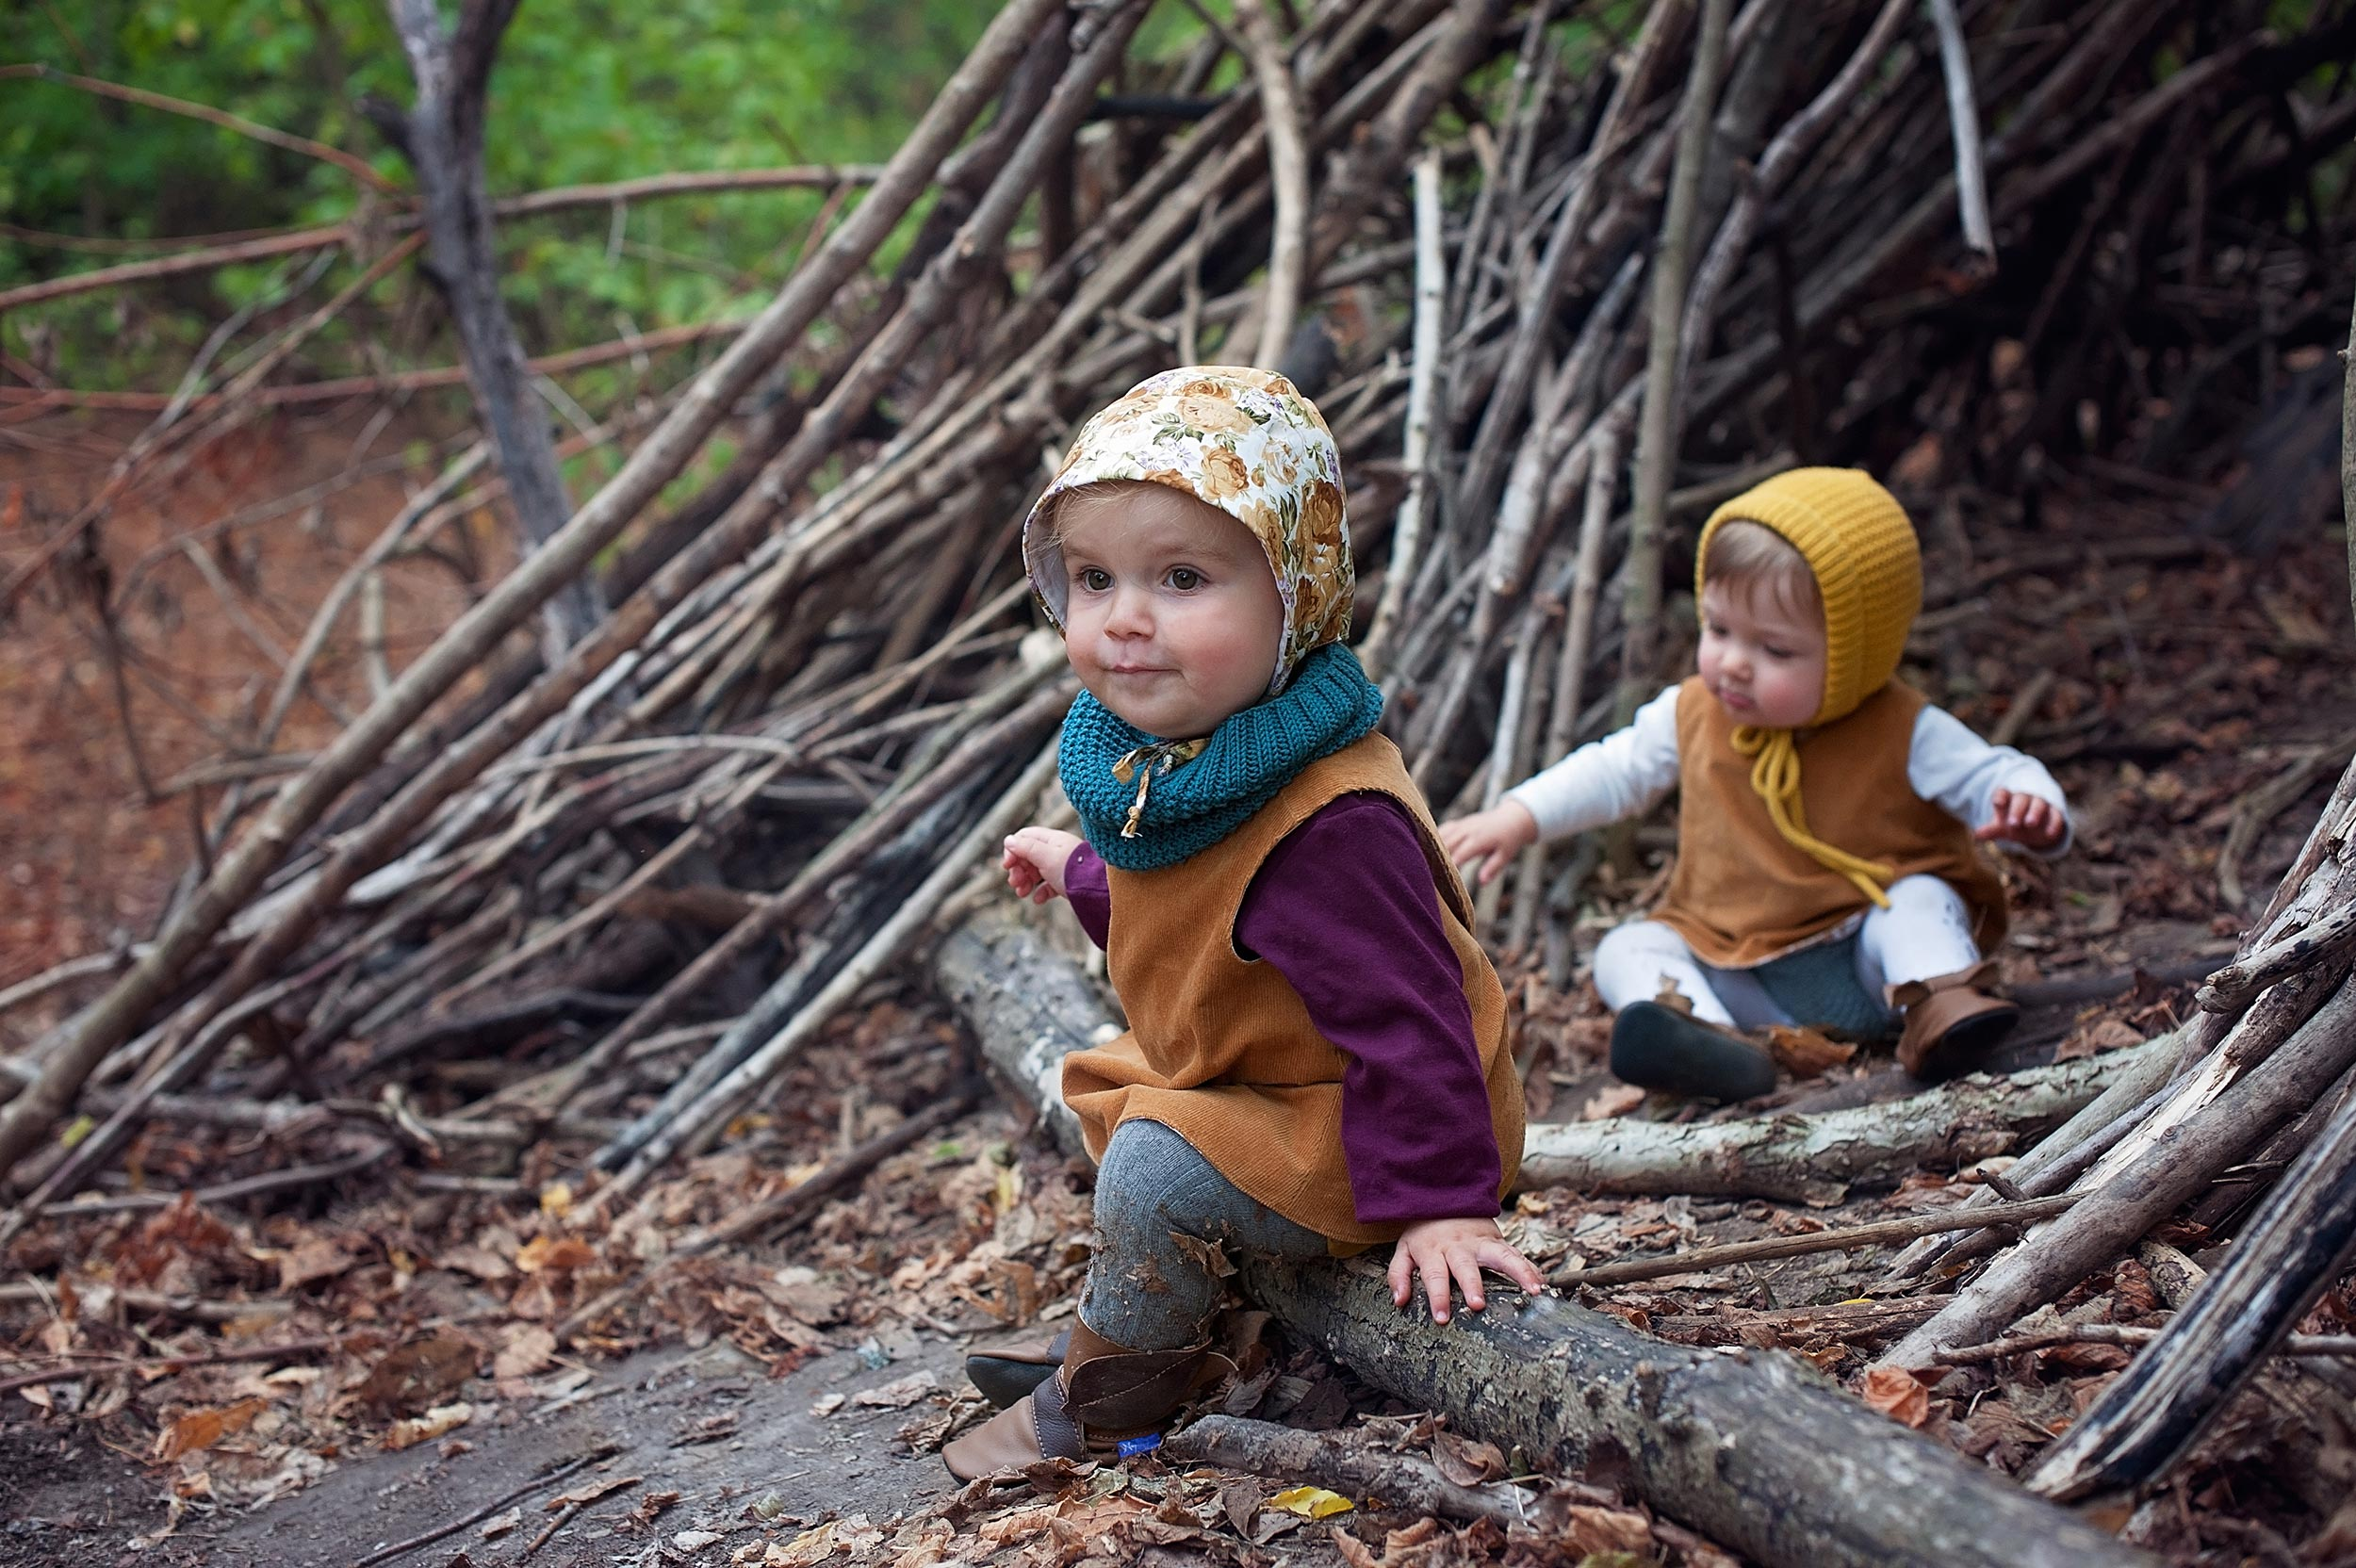 Small-Time-Vintage,-Anomaly-Leathers-and-Abbotsford-Knits-collaboration_girls-in-tree-hut_newHR.jpg